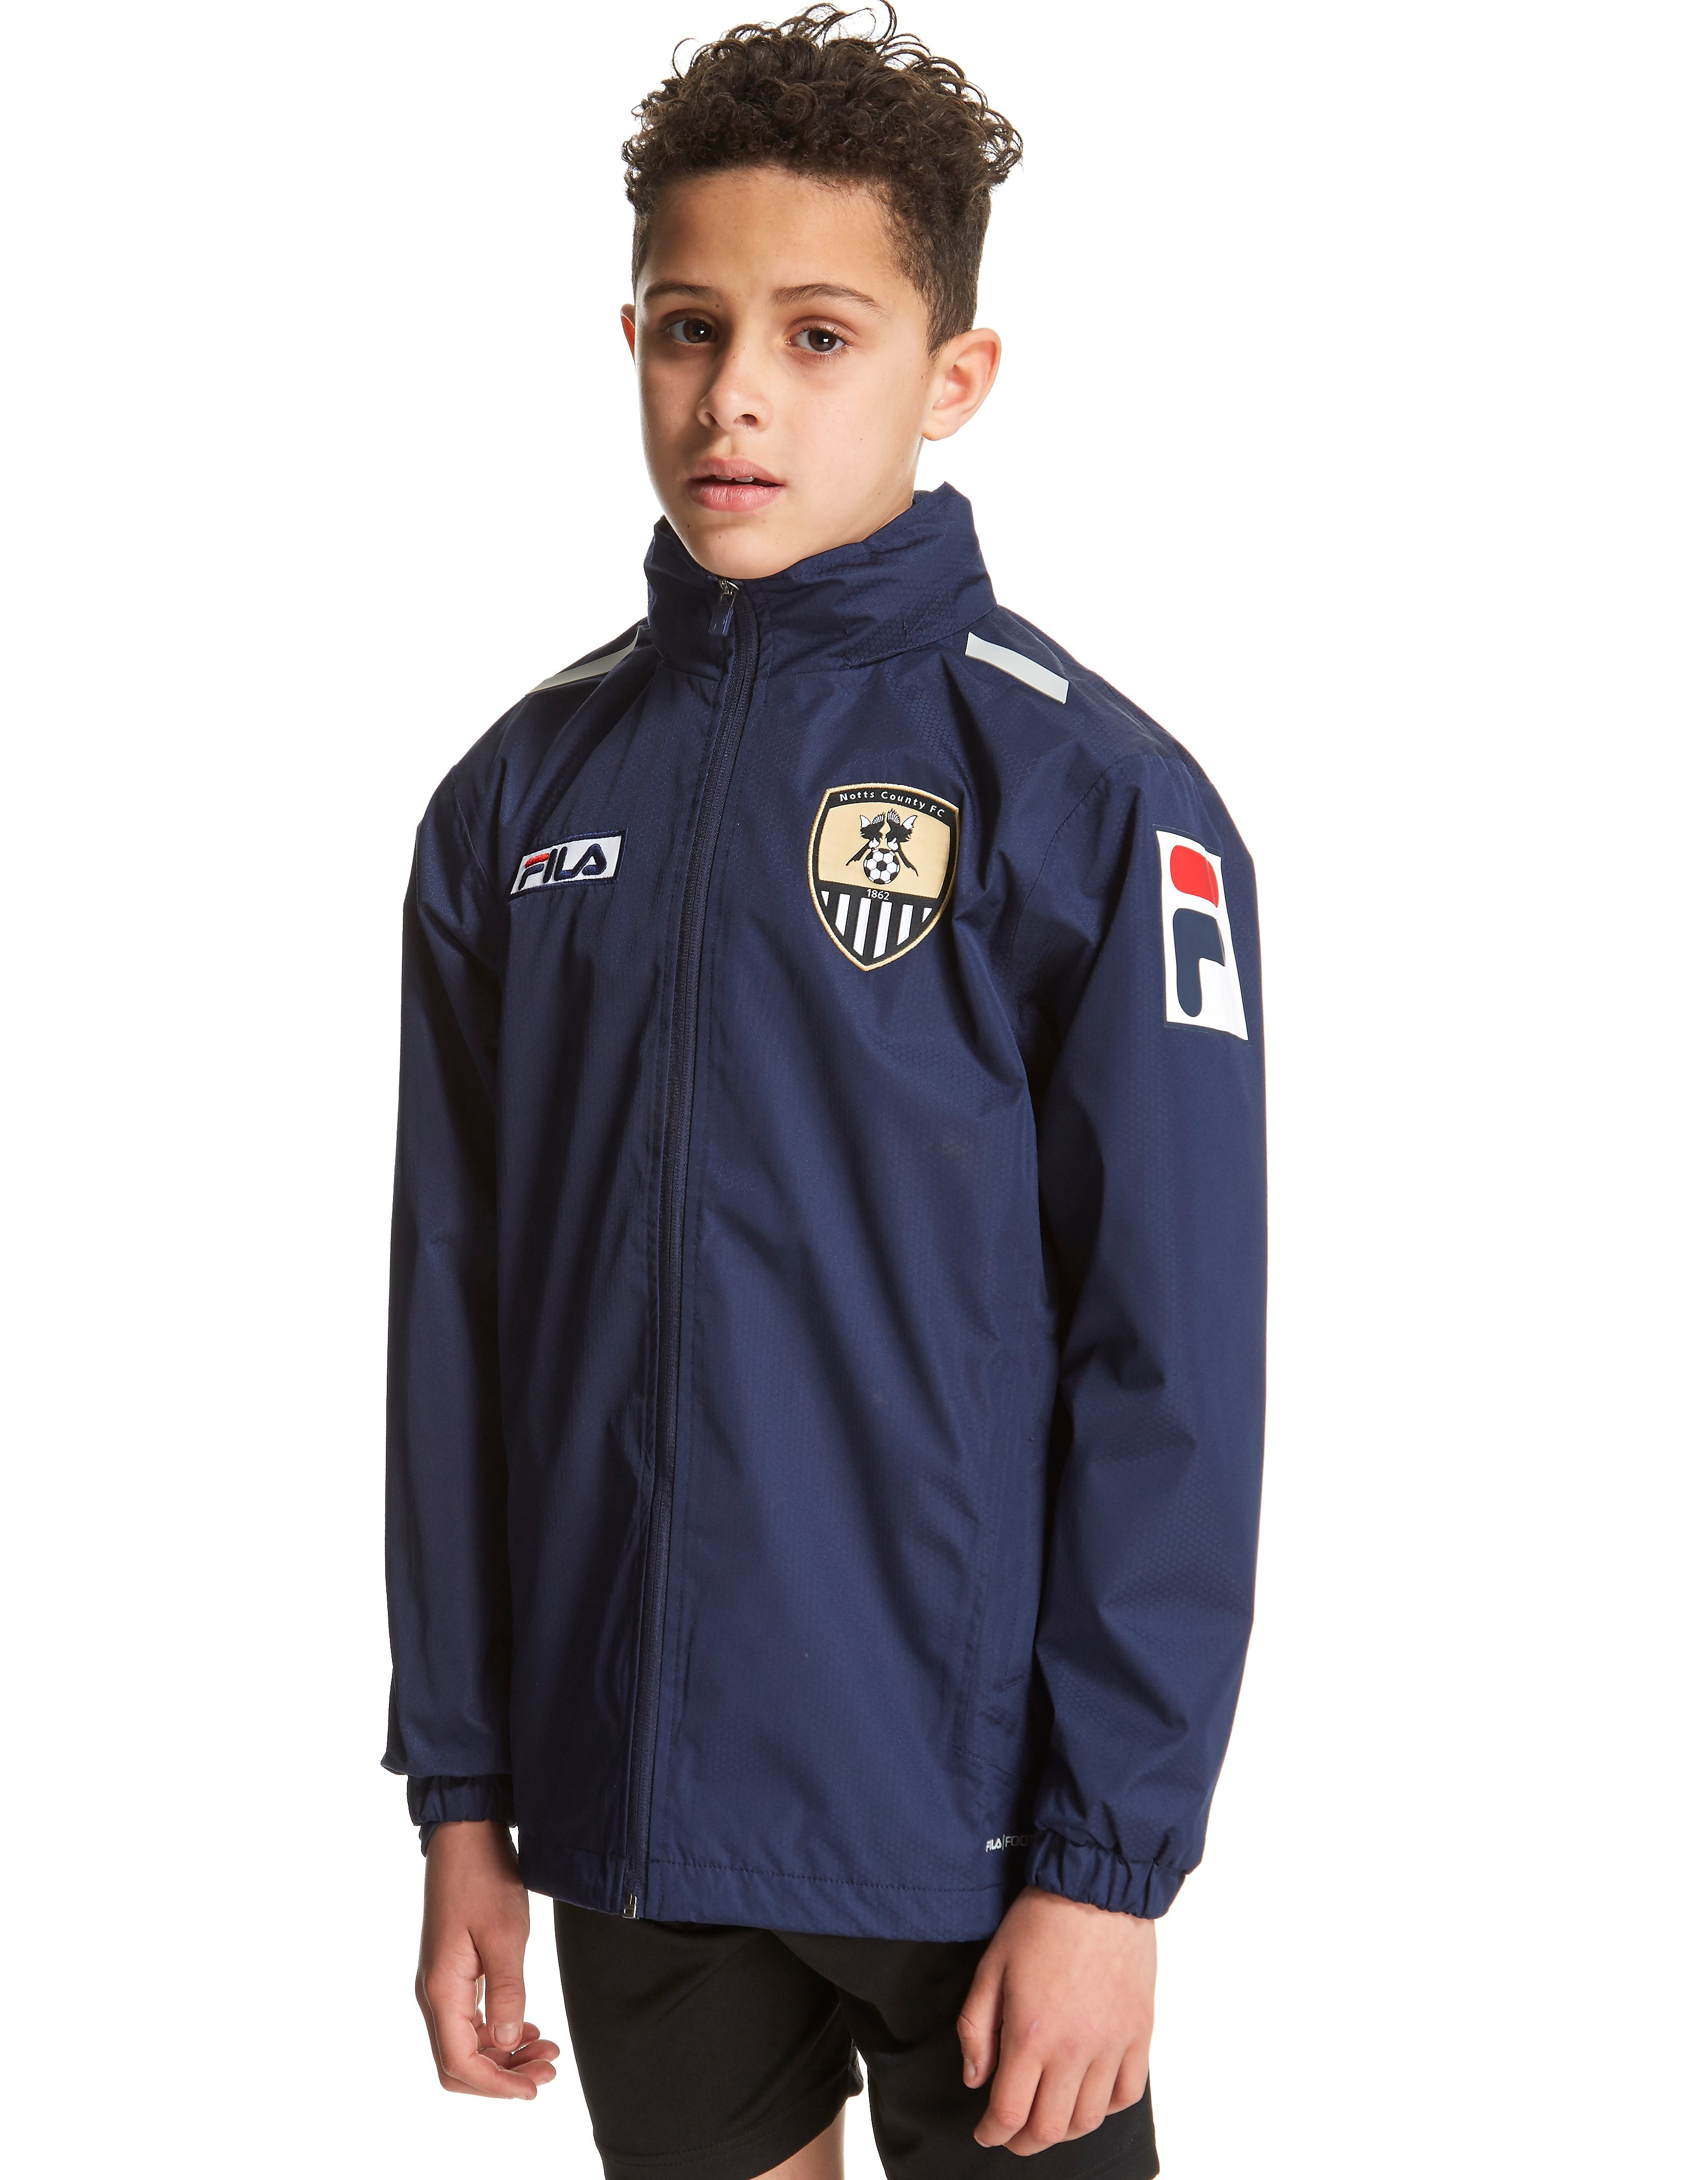 Fila Notts County FC 2012 Shower Jacket Junior